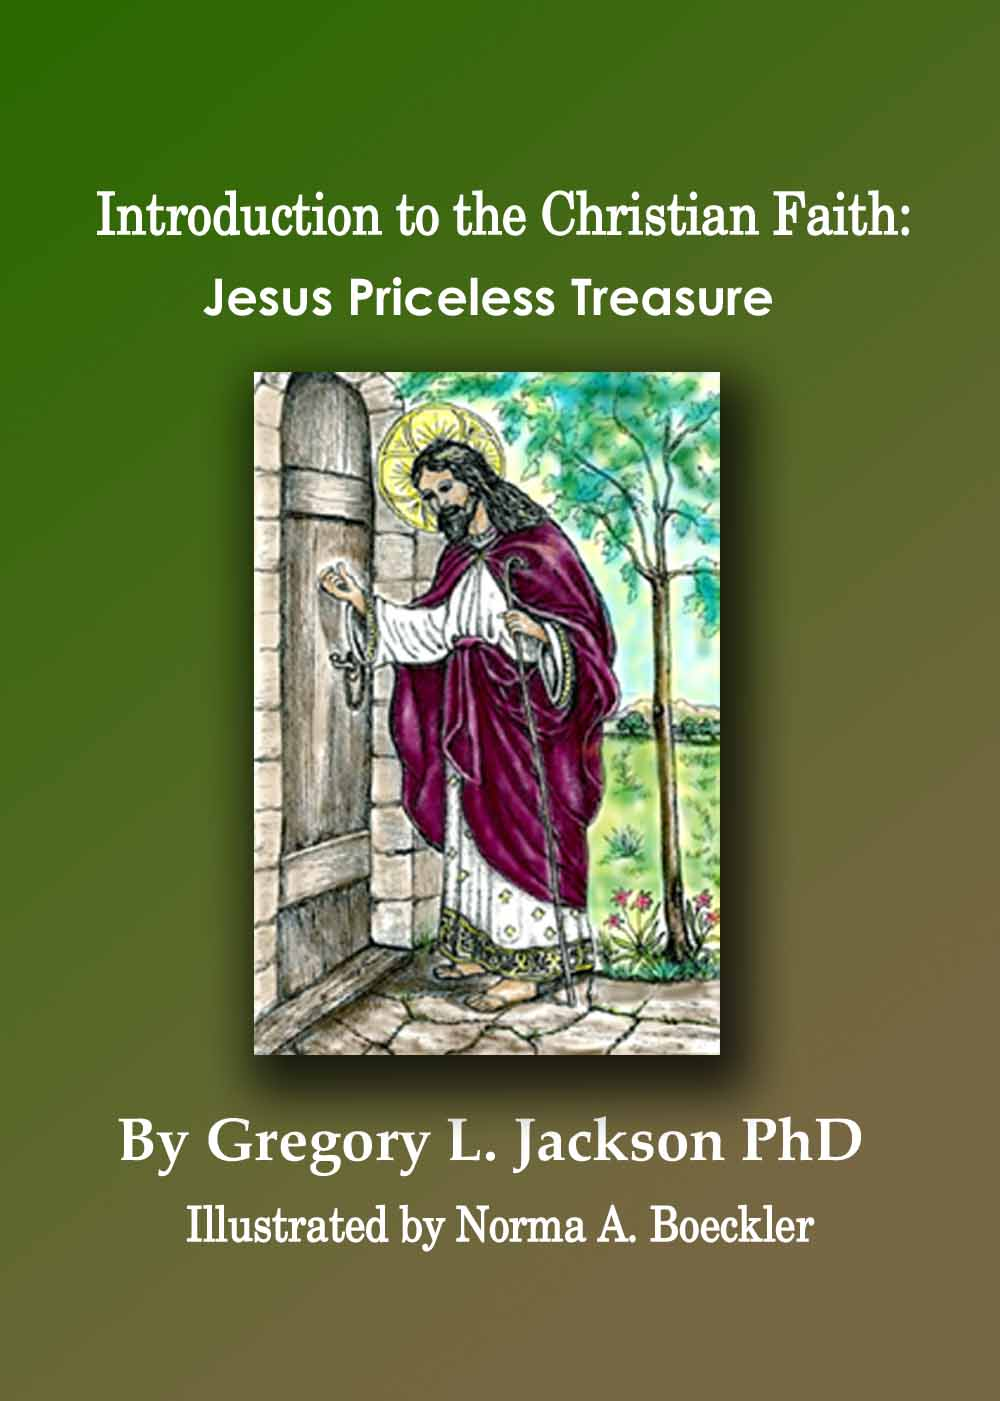 <b>Introduction to the Christian Faith</b>